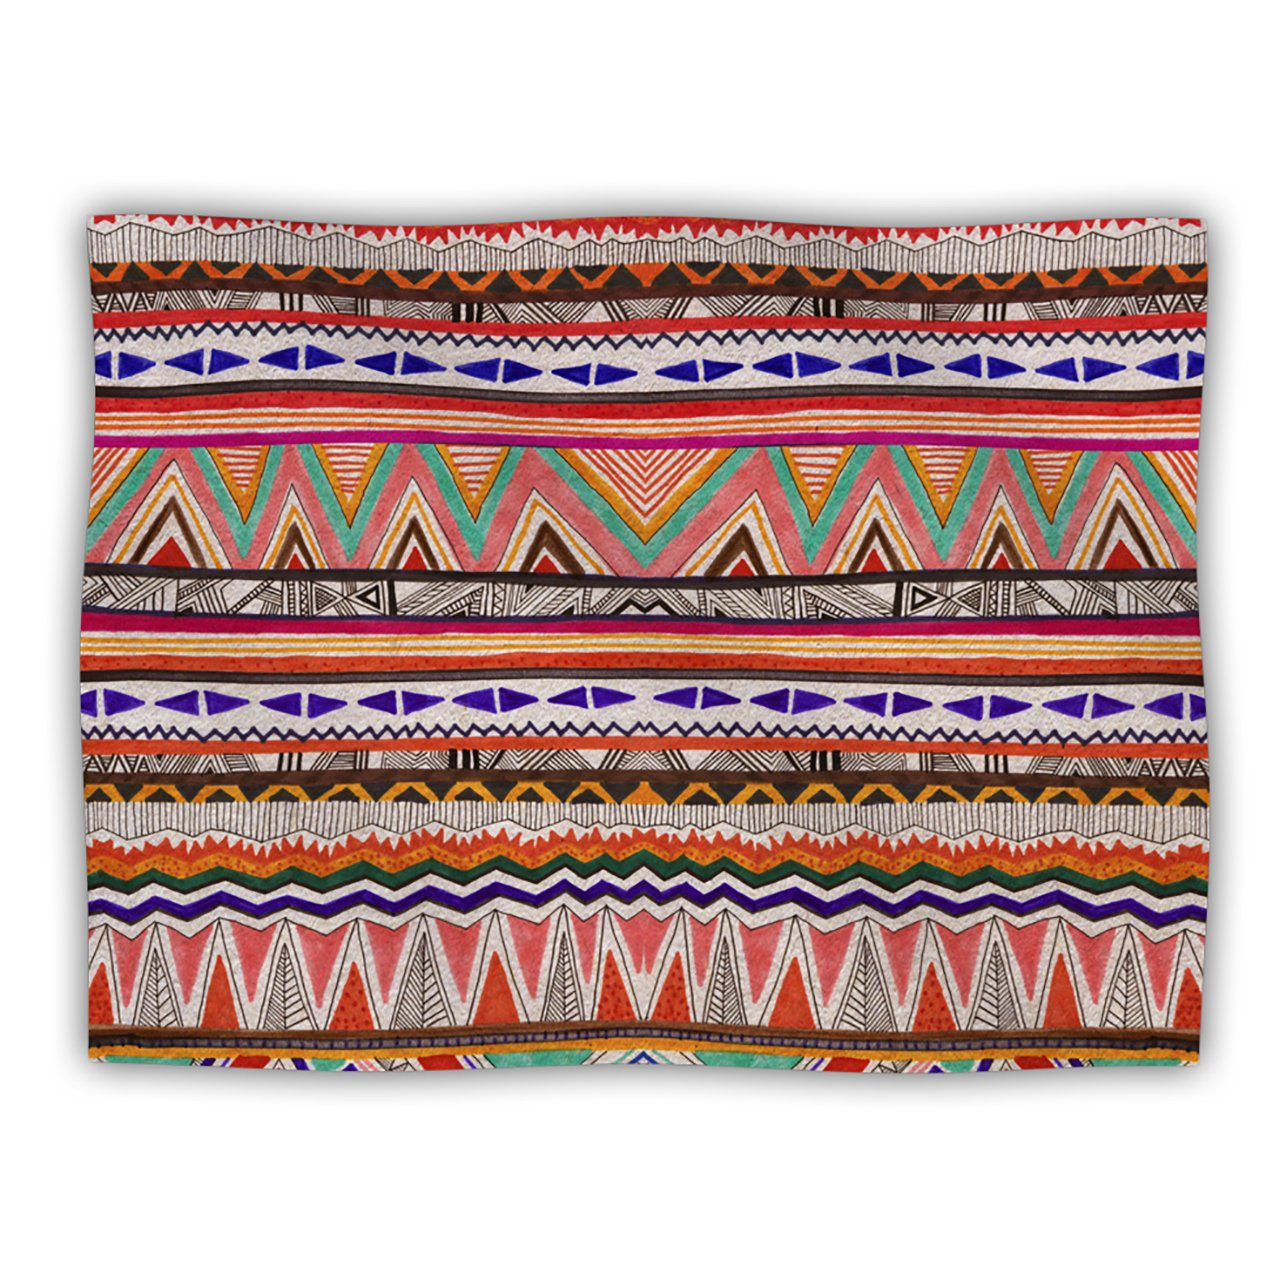 Kess InHouse Vasare Nar Native Tessellation Pet Blanket, 60 by 50-Inch